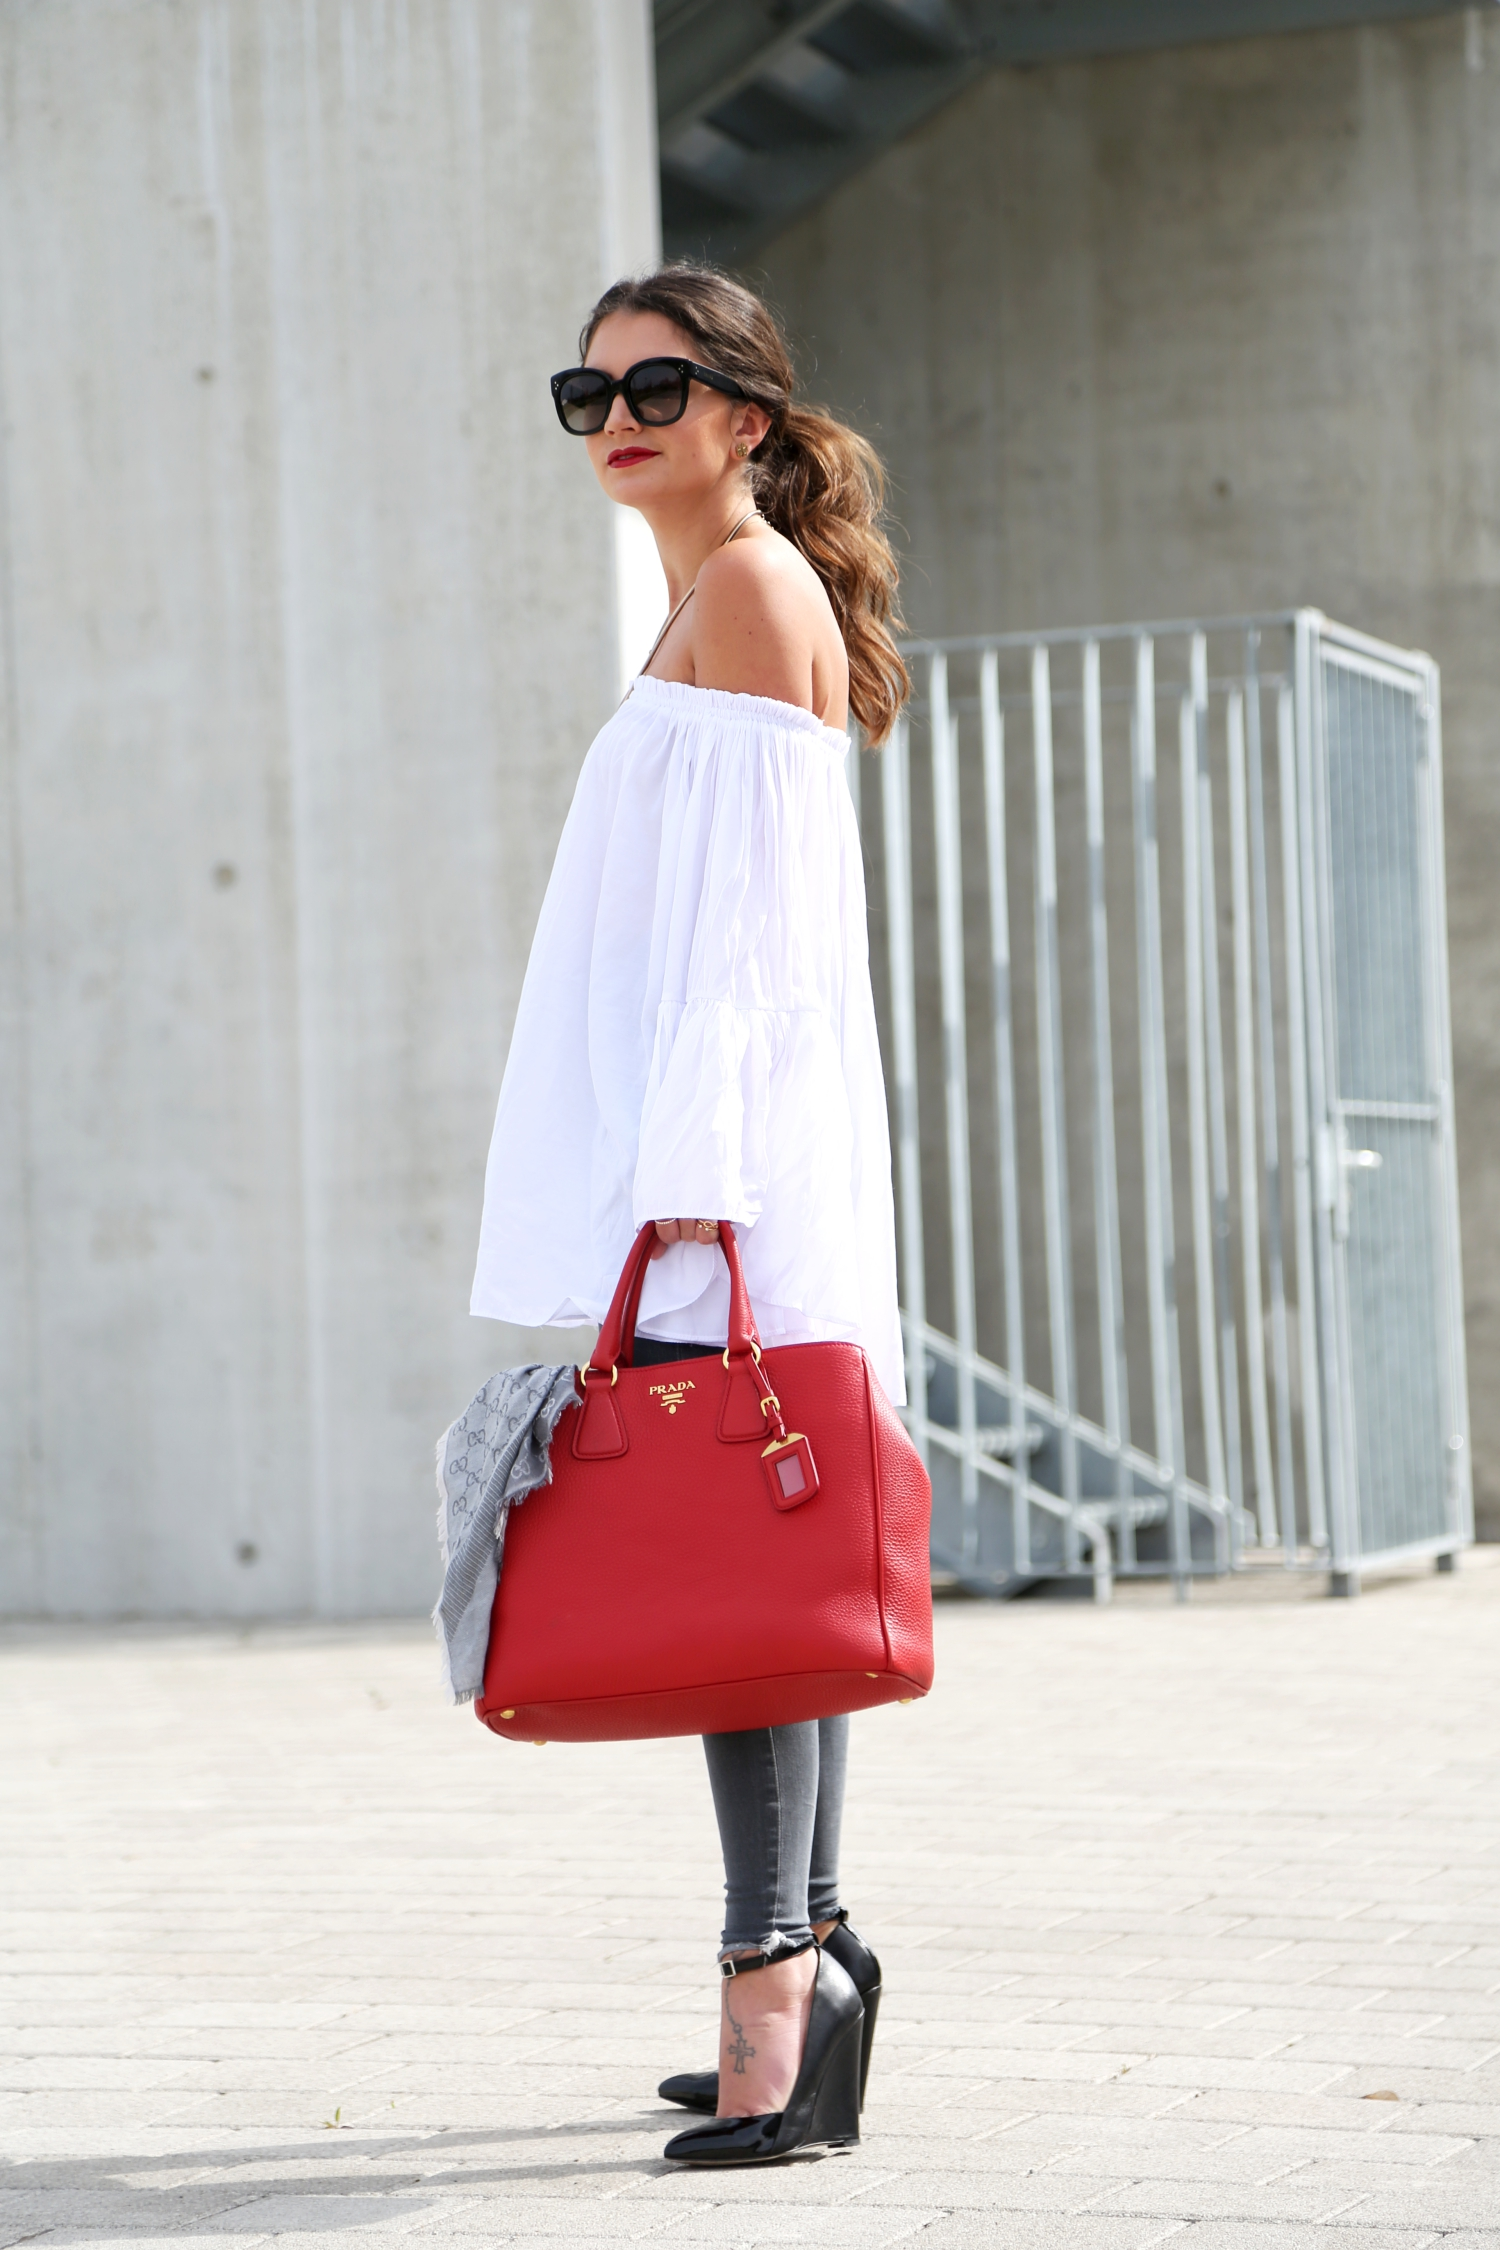 outfit-fashionhippieloves-off-shoulder-top-prada-bag